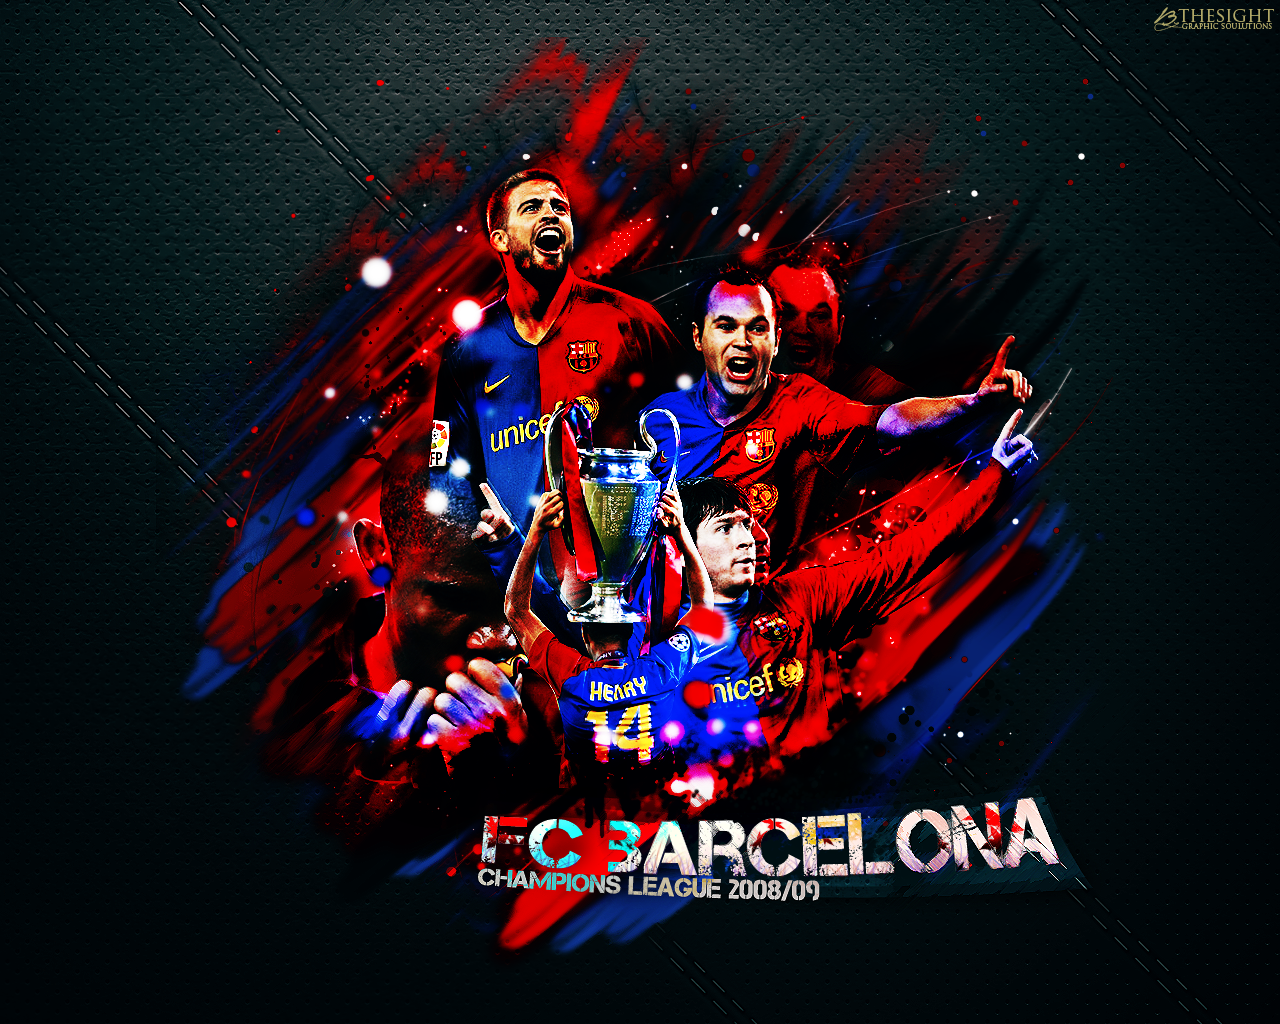 Descargar 1º pack de wallpapers de futbol YouTube - Imagenes De Futbol Wallpapers